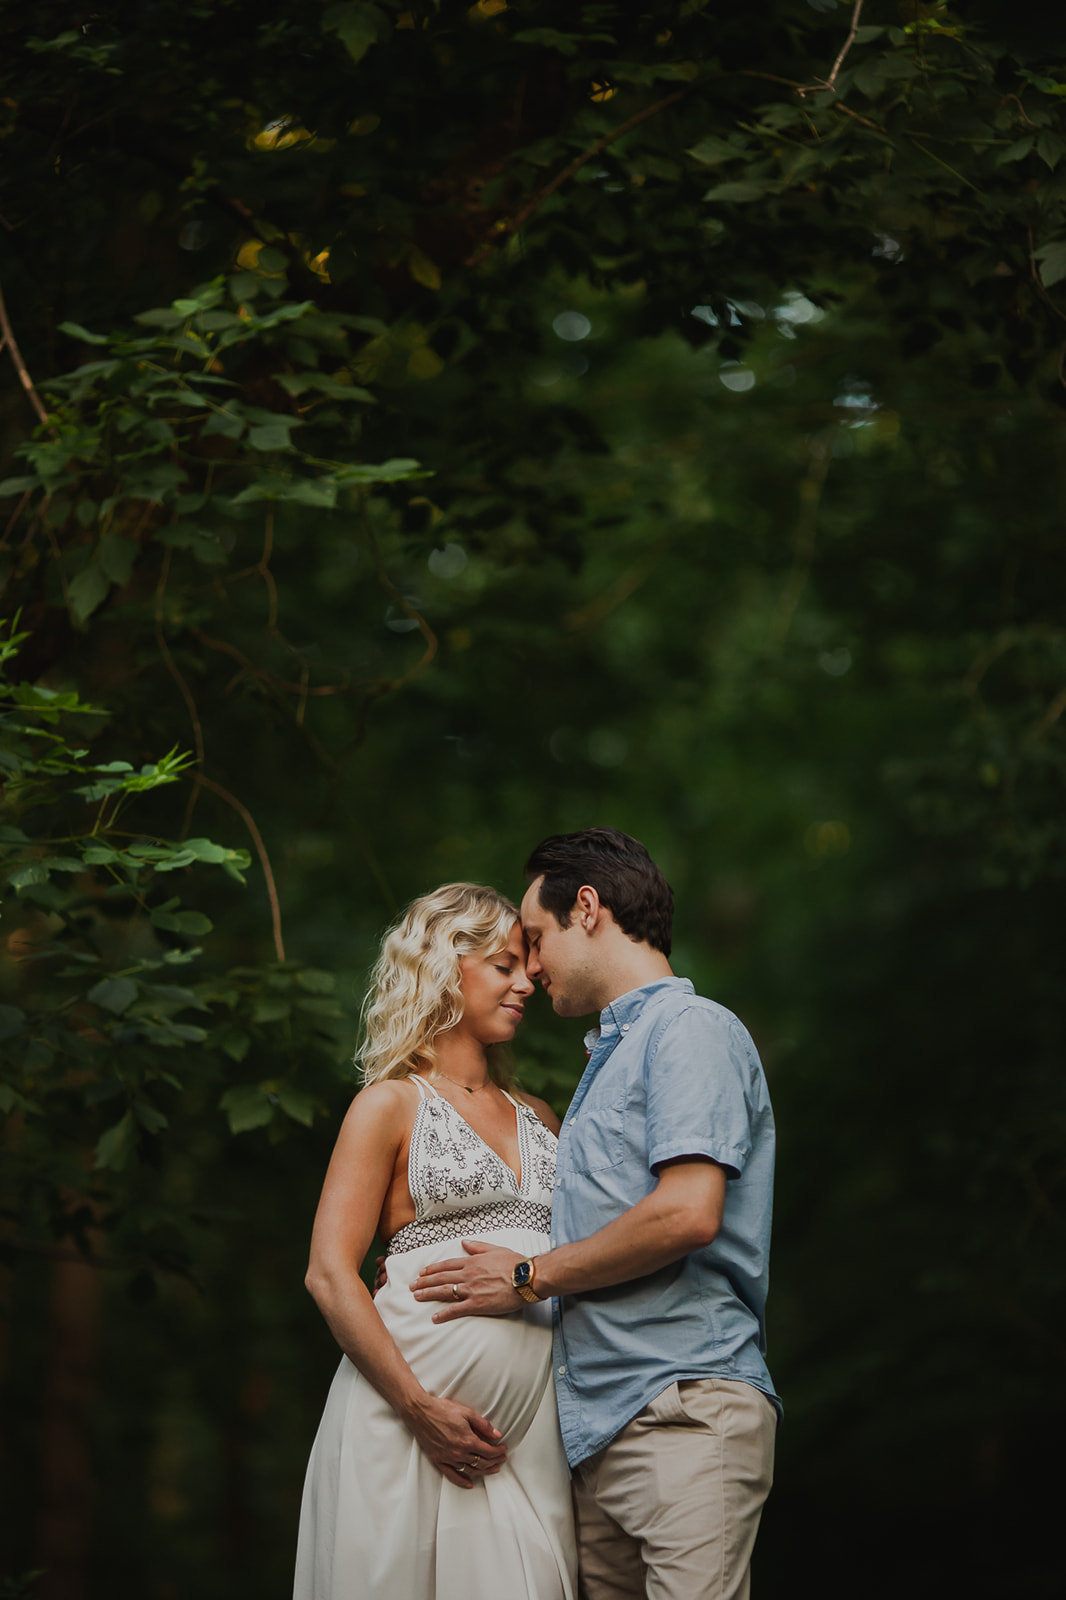 2_Maryland-Summer-Boho-Dress-Maternity-Couple-Woods